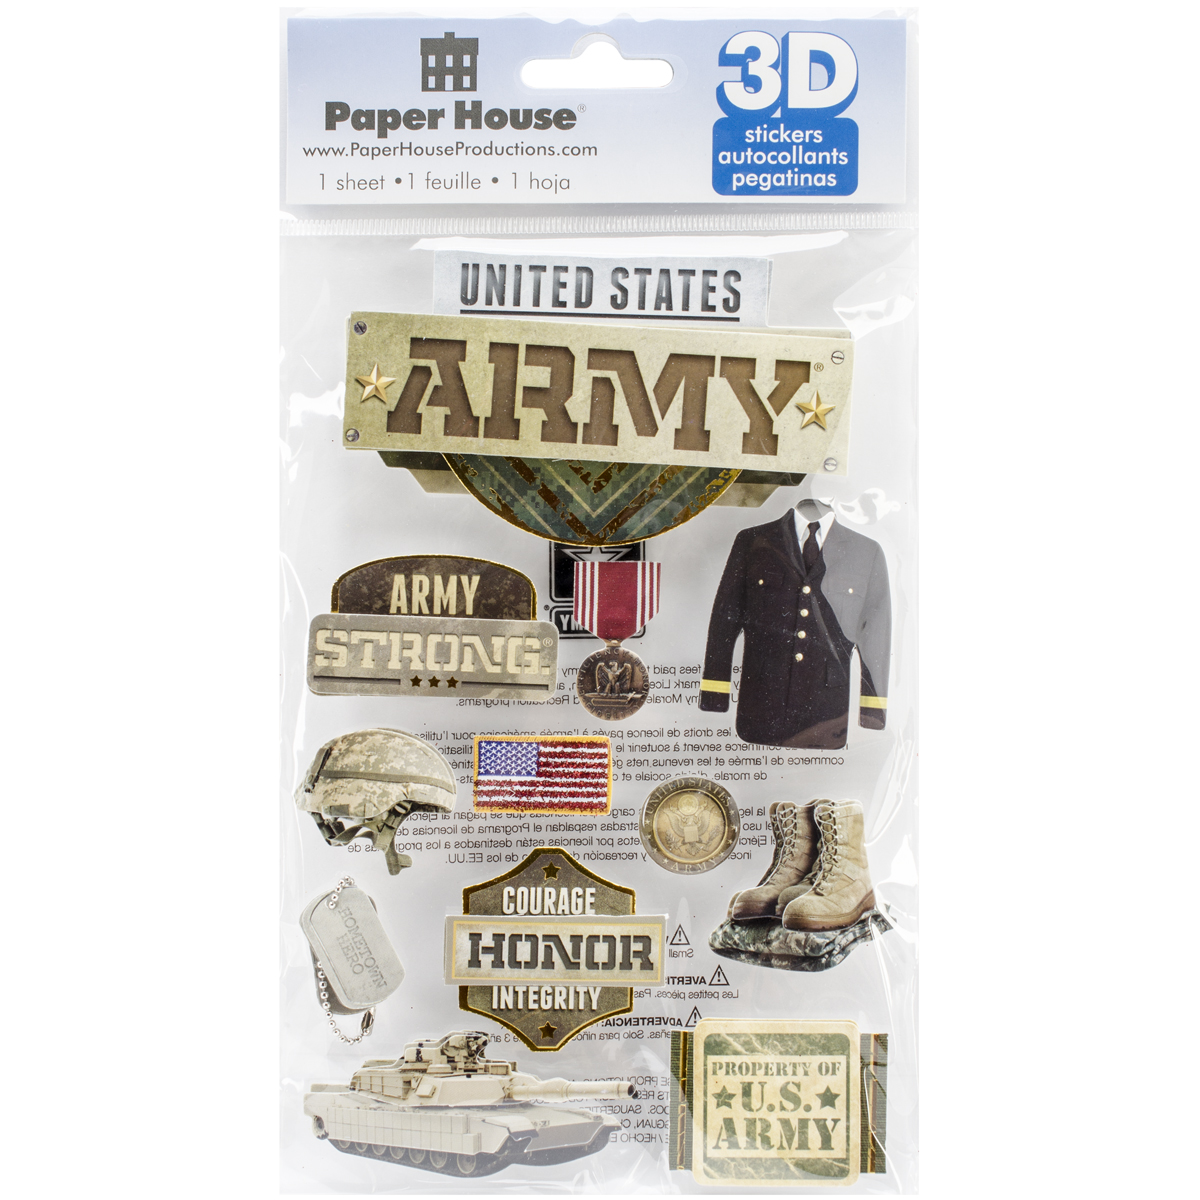 ARMY      -3D STICKERS